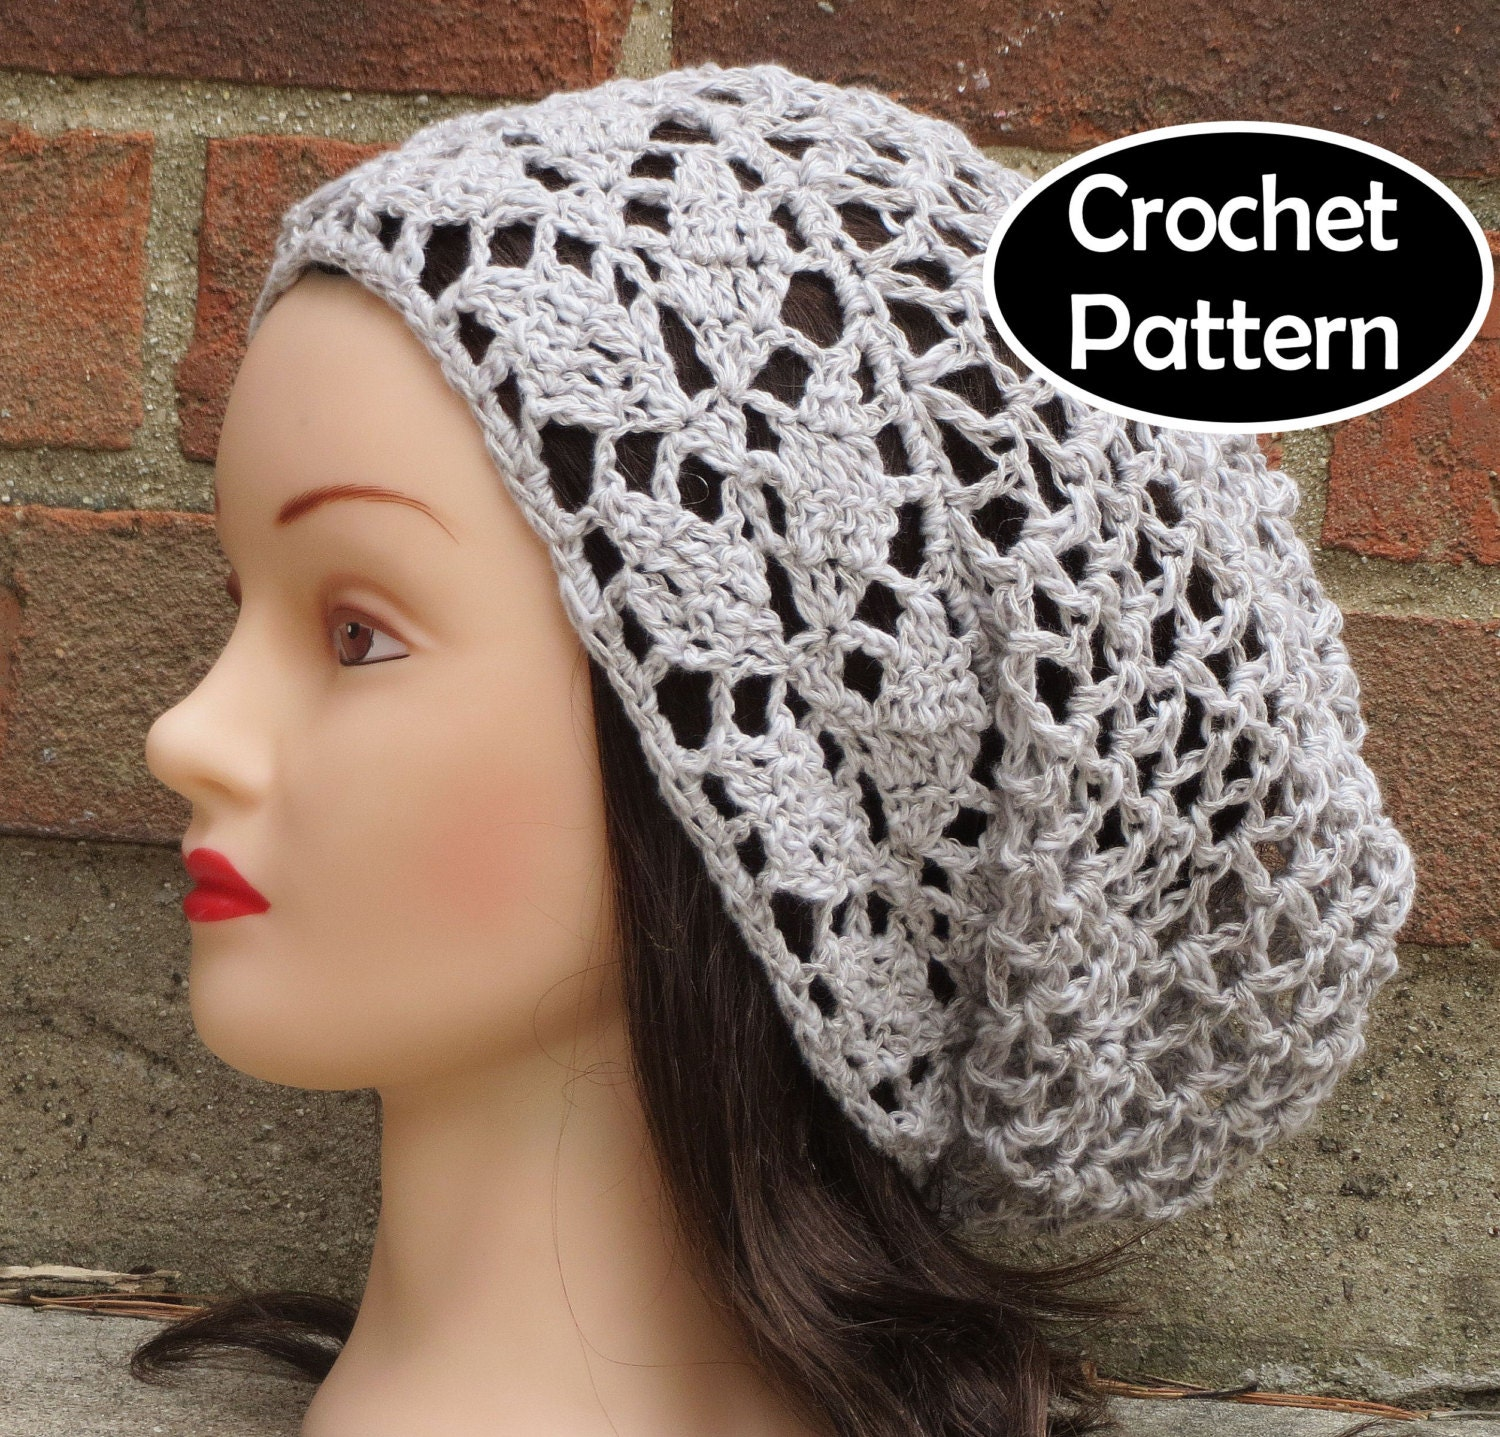 Crochet Hat Pattern Download : CROCHET HAT PATTERN Instant Download Pdf Avalon Slouchy Hat